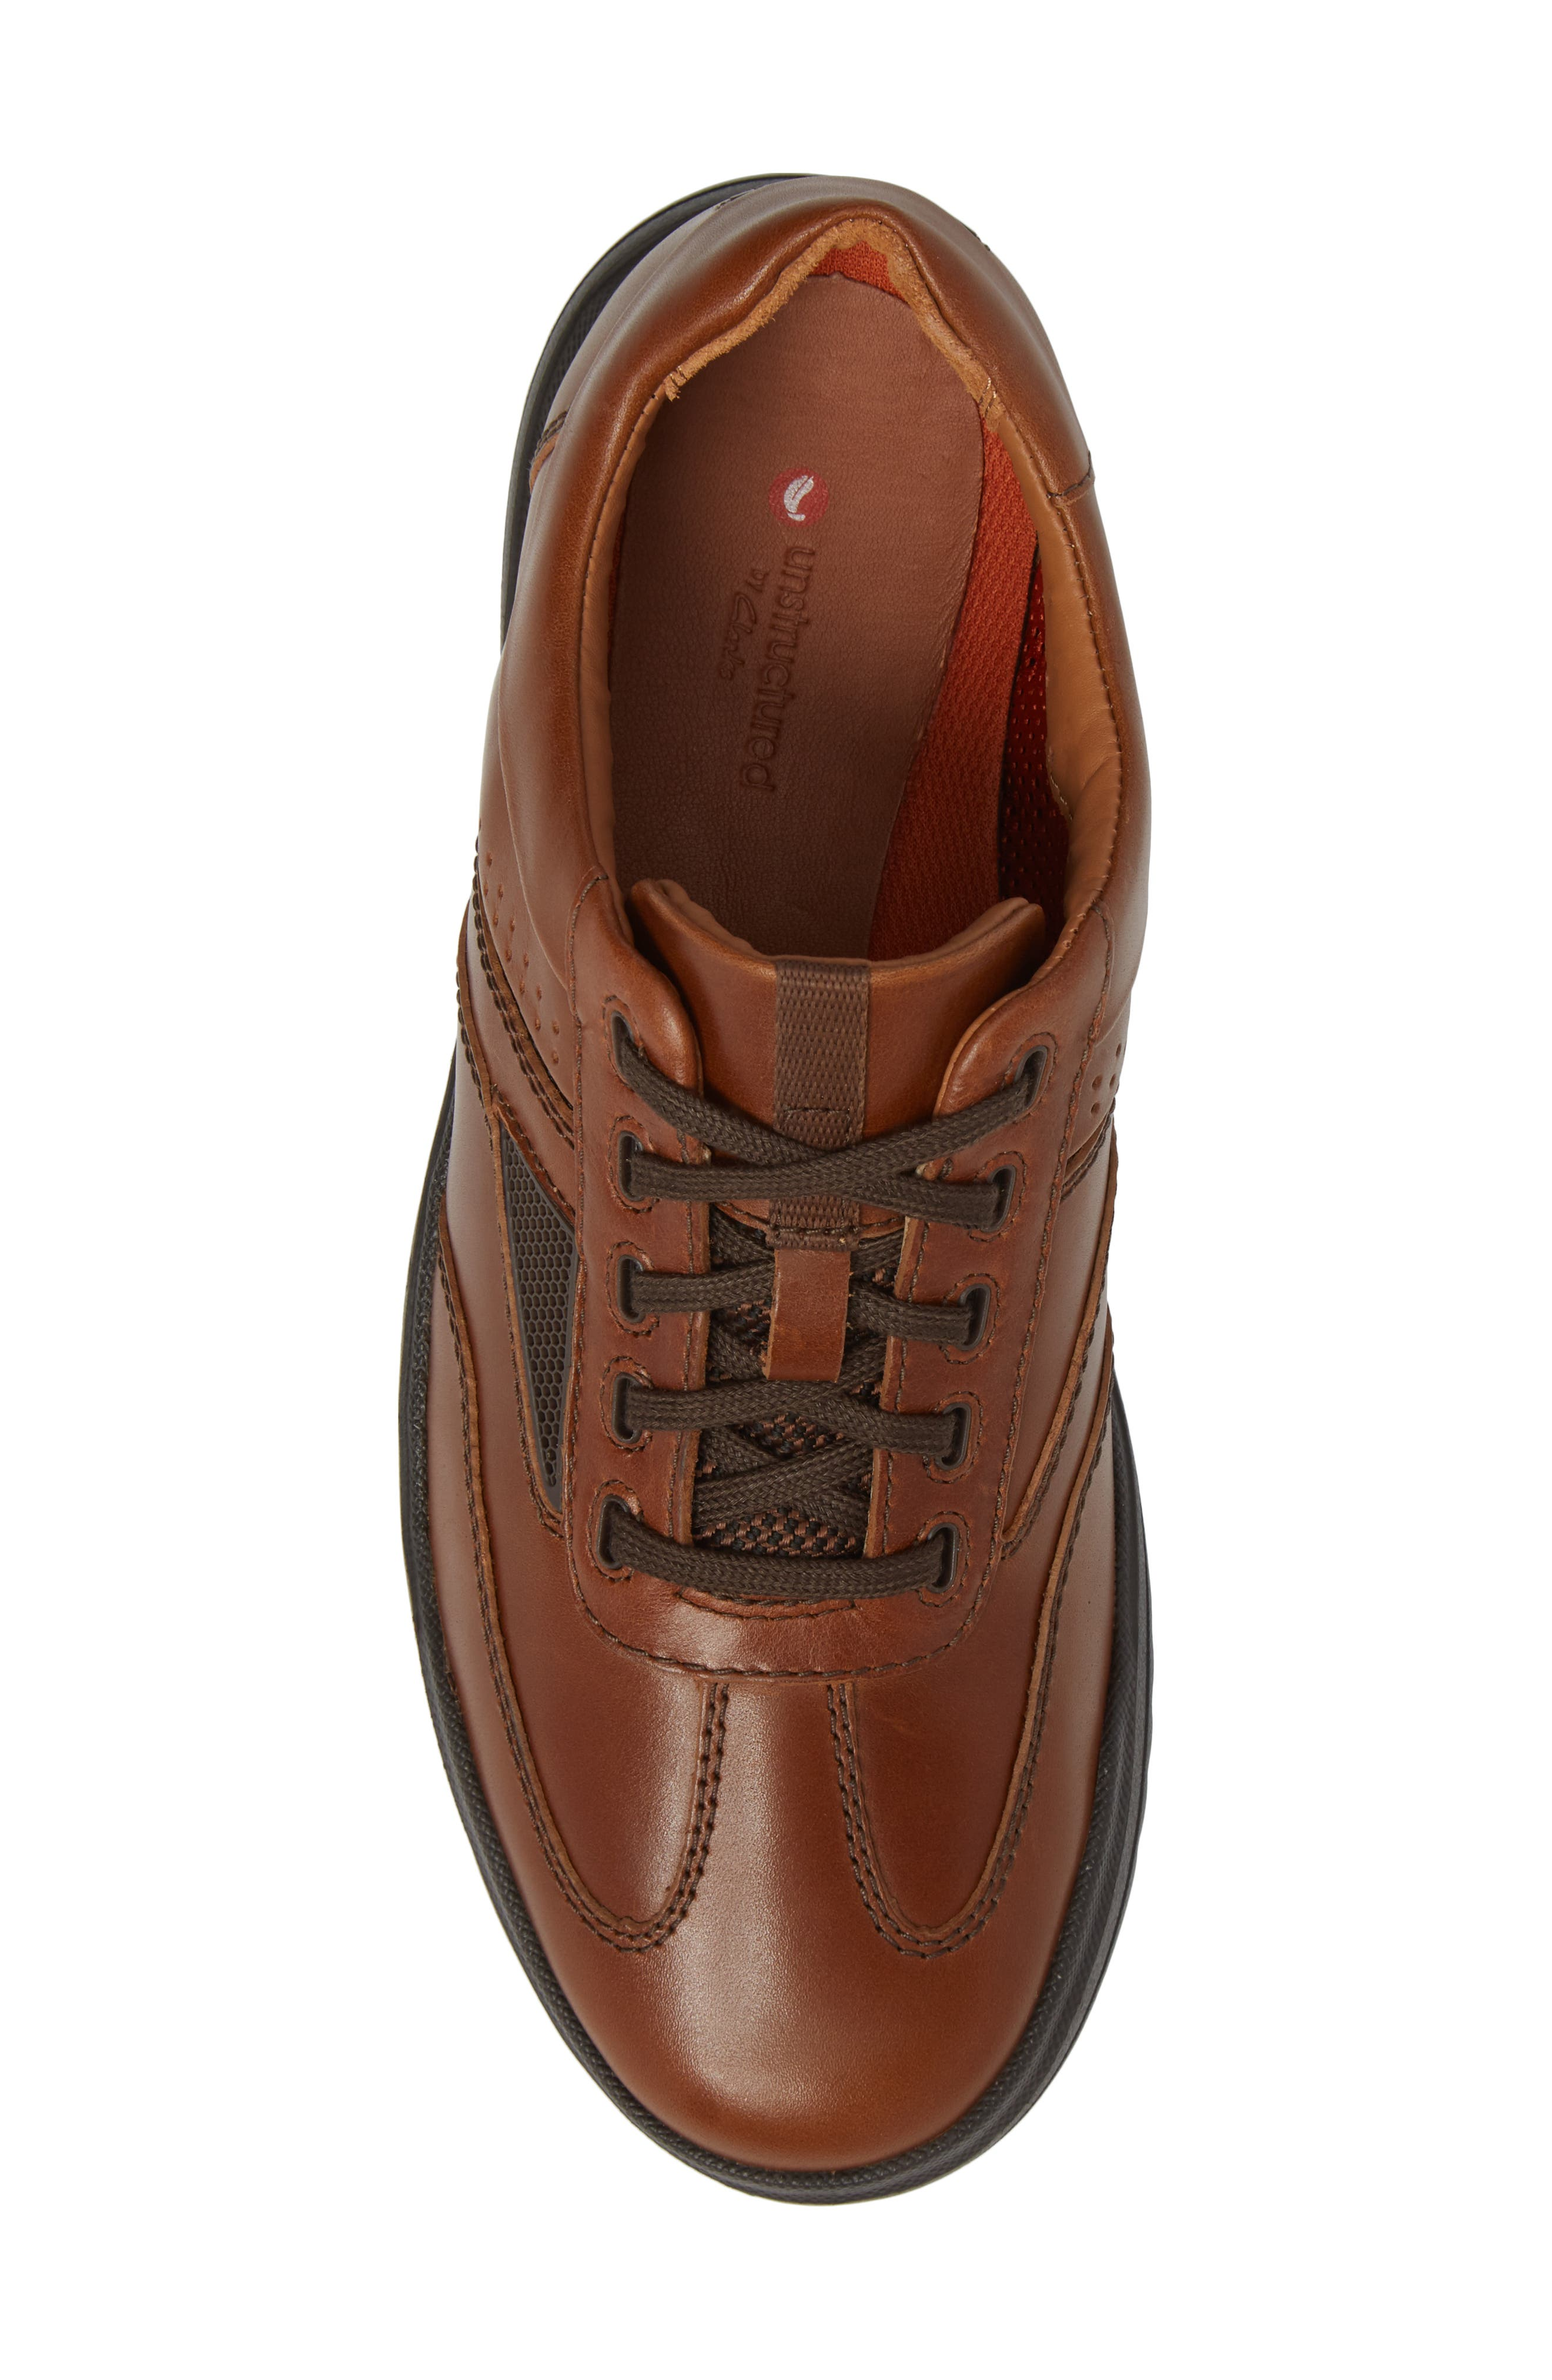 Un.Rhombus Fly Sneaker,                             Alternate thumbnail 4, color,                             Tan Leather